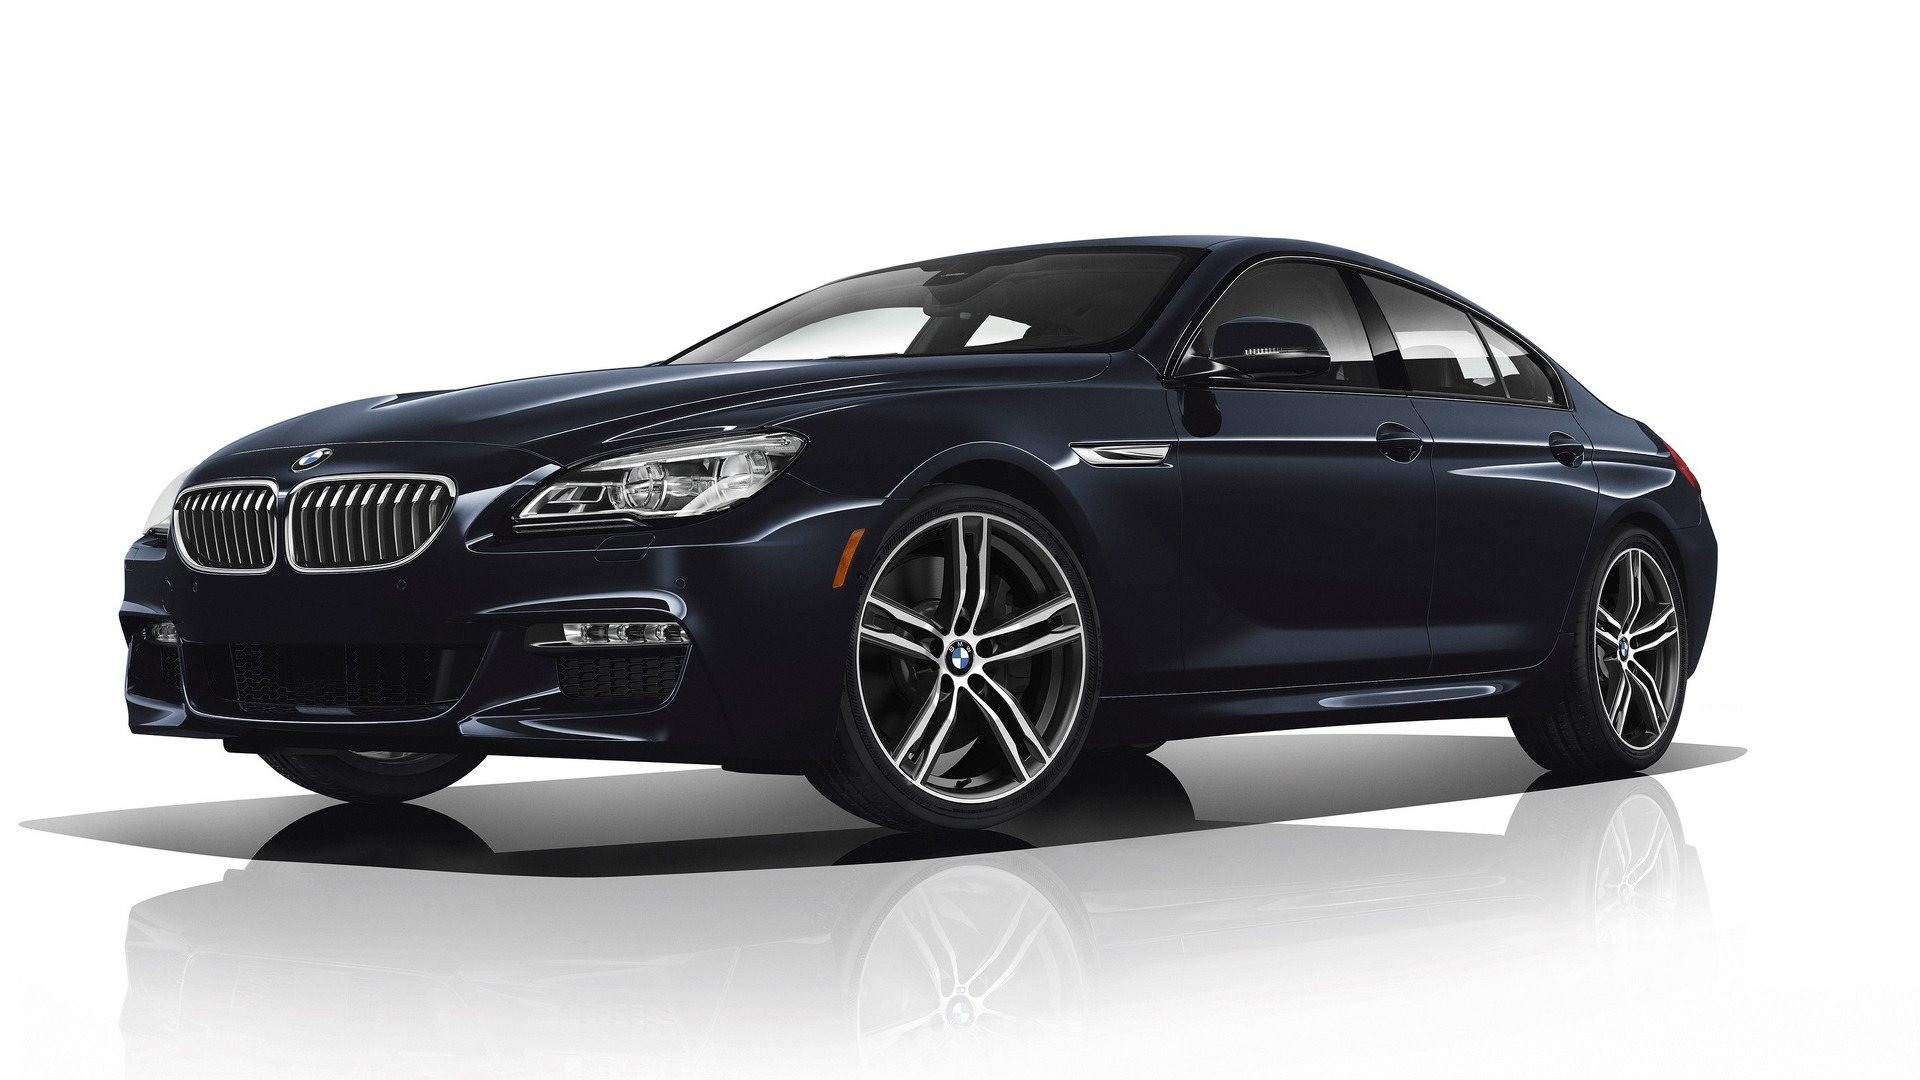 bmw introduces 2018 6 series 530e iperformance m550i xdrive for u s market autoevolution. Black Bedroom Furniture Sets. Home Design Ideas